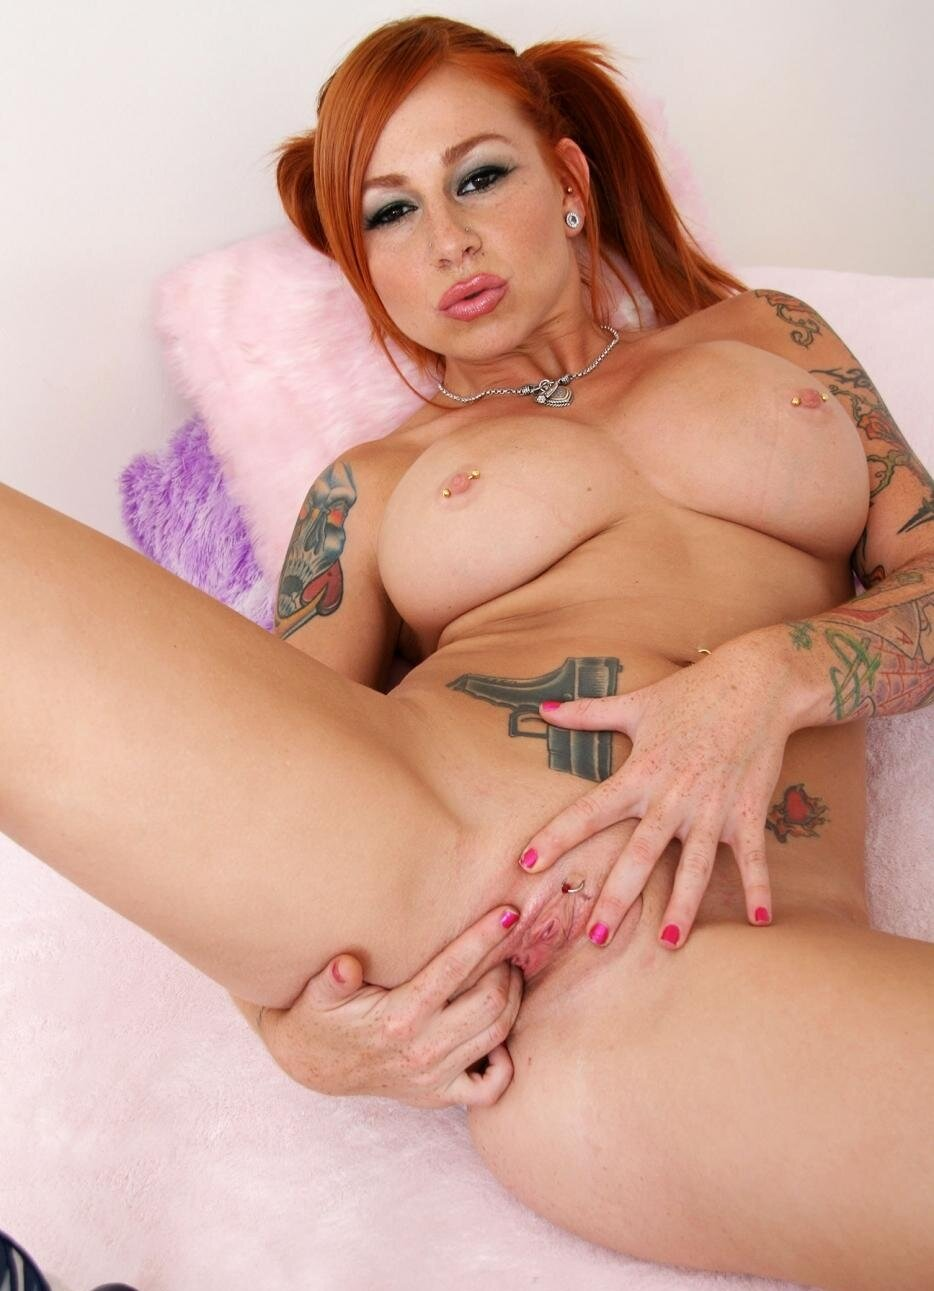 drunk red head naked